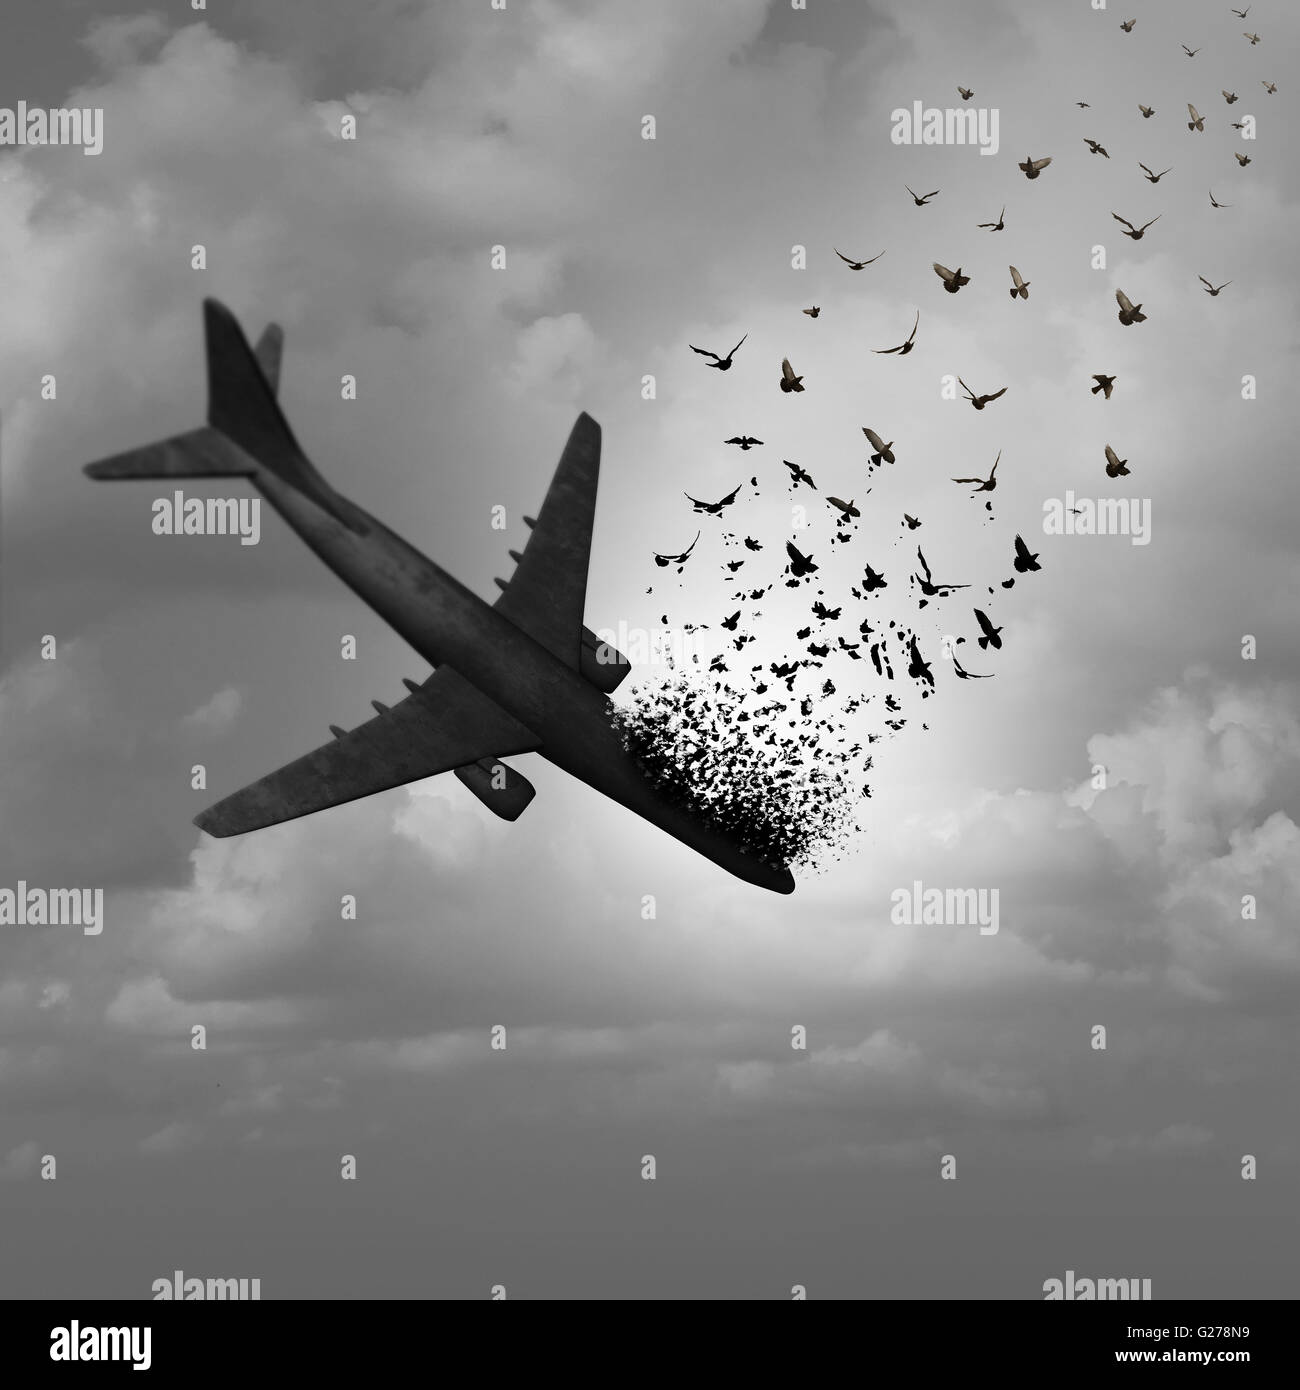 Plane Disappearance and missing flight concept as a plunging crashing airplane falling apart in the sky and tranforming - Stock Image